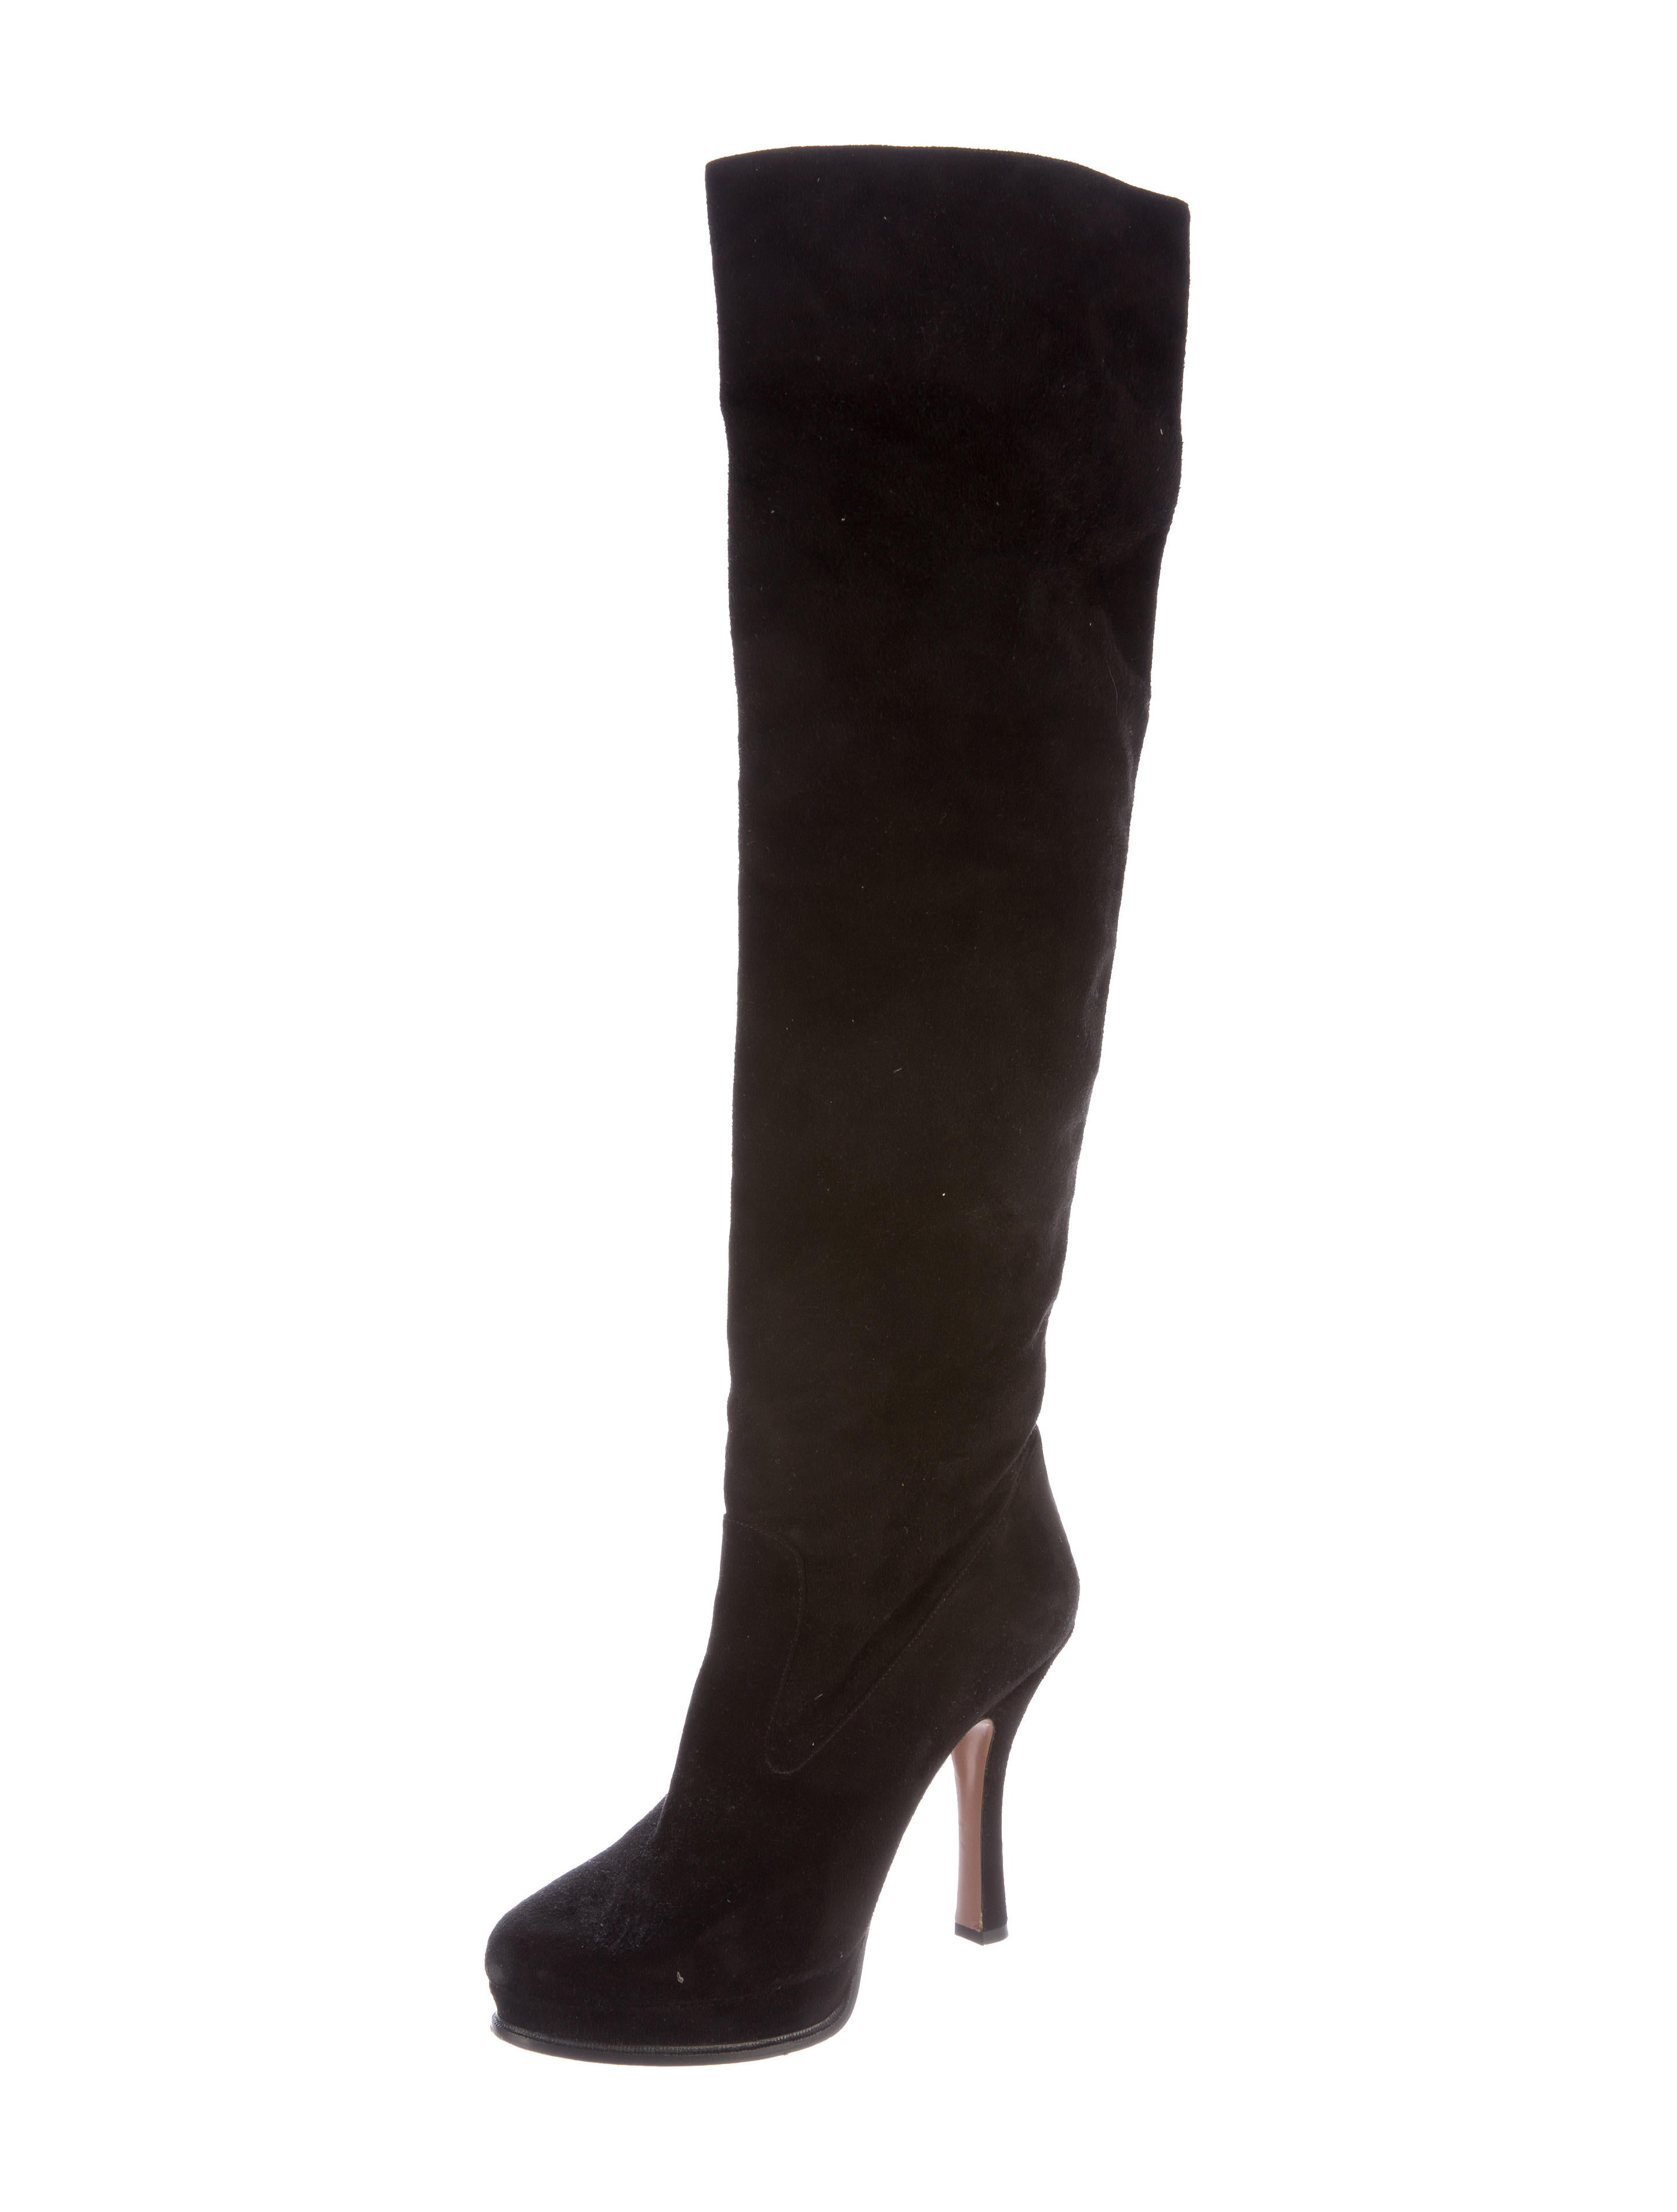 Find great deals on eBay for suede knee high boots. Shop with confidence.